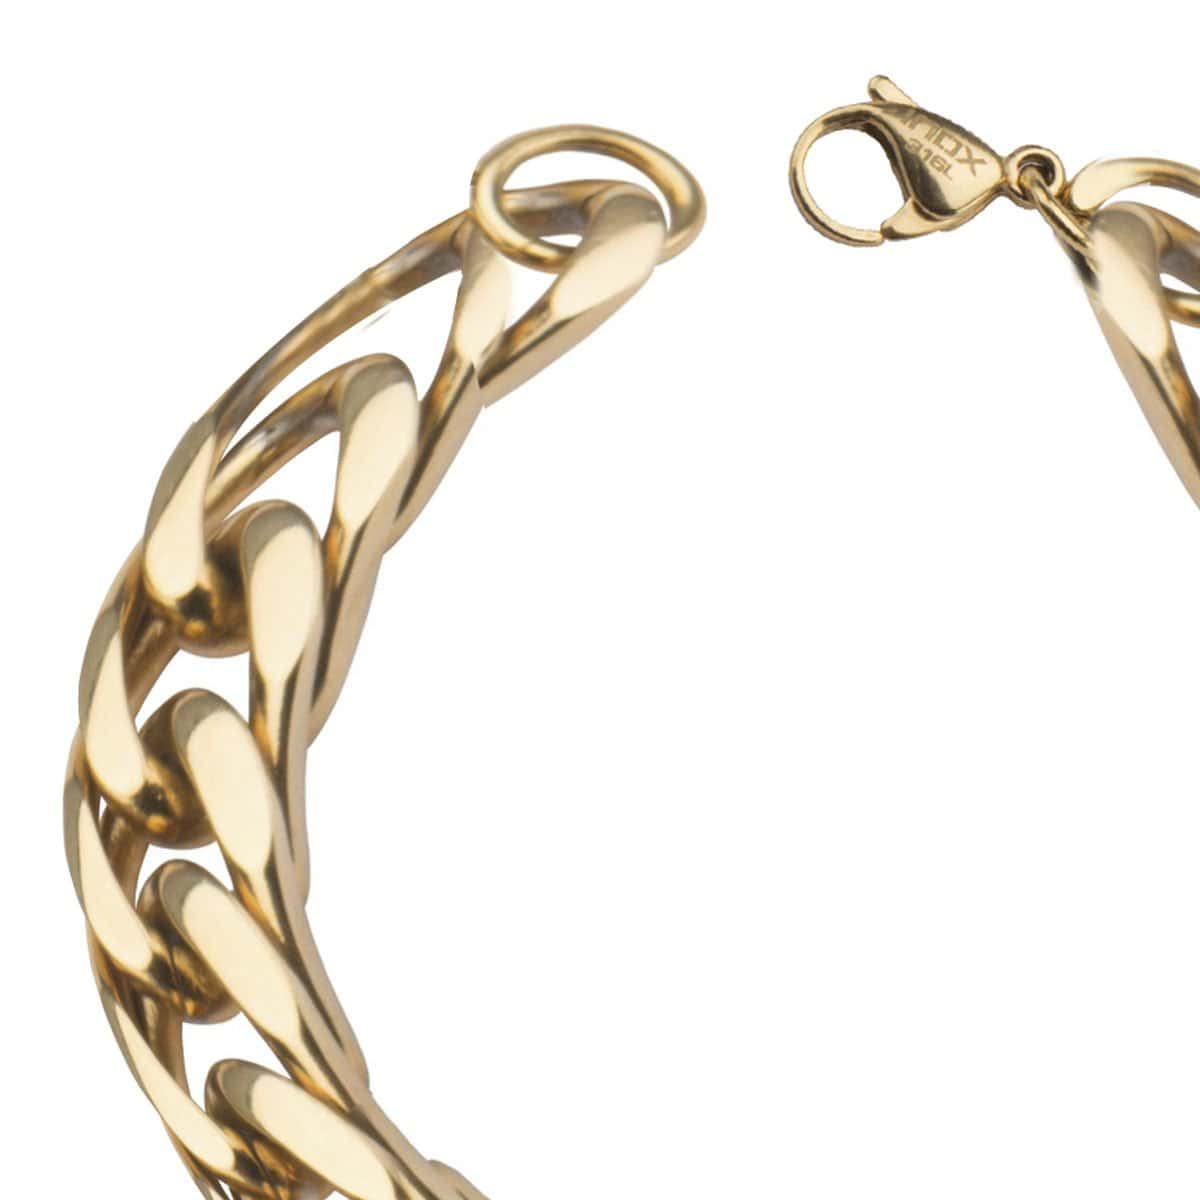 Gold Stainless Steel Fancy Curb Chain Bracelet